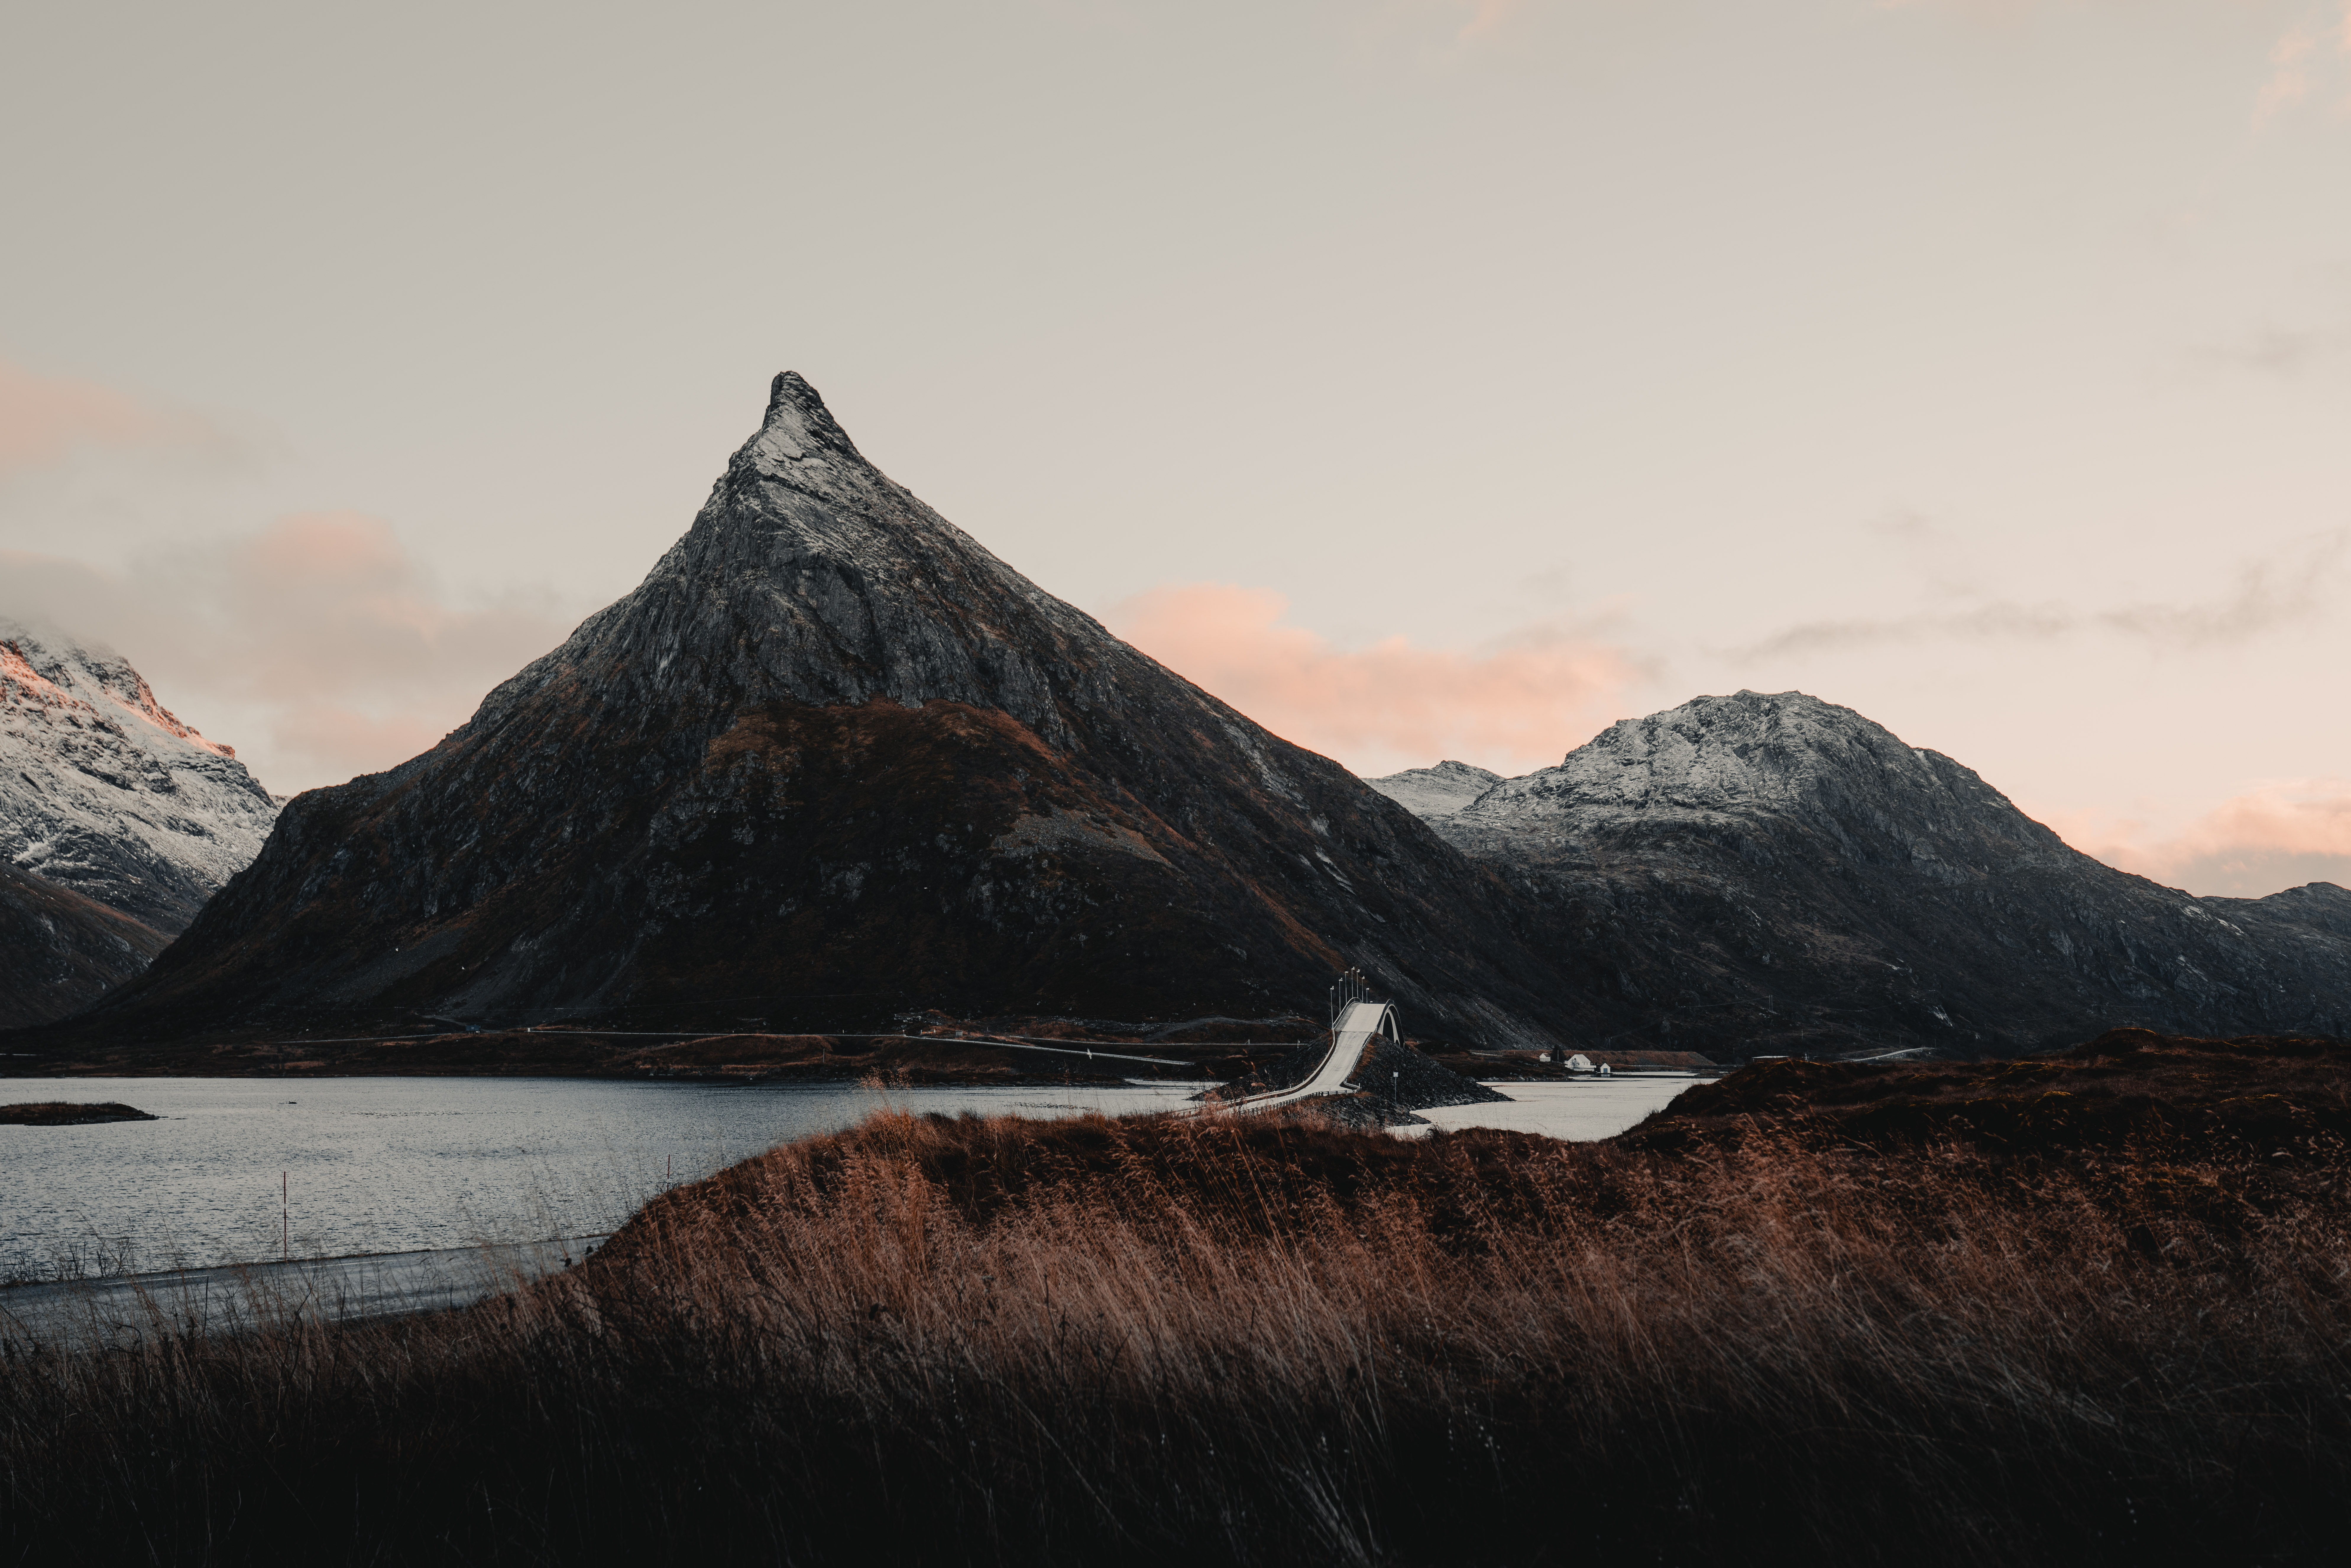 115757 free wallpaper 720x1520 for phone, download images Landscape, Nature, Rivers, Mountains, Bridge, Norway 720x1520 for mobile